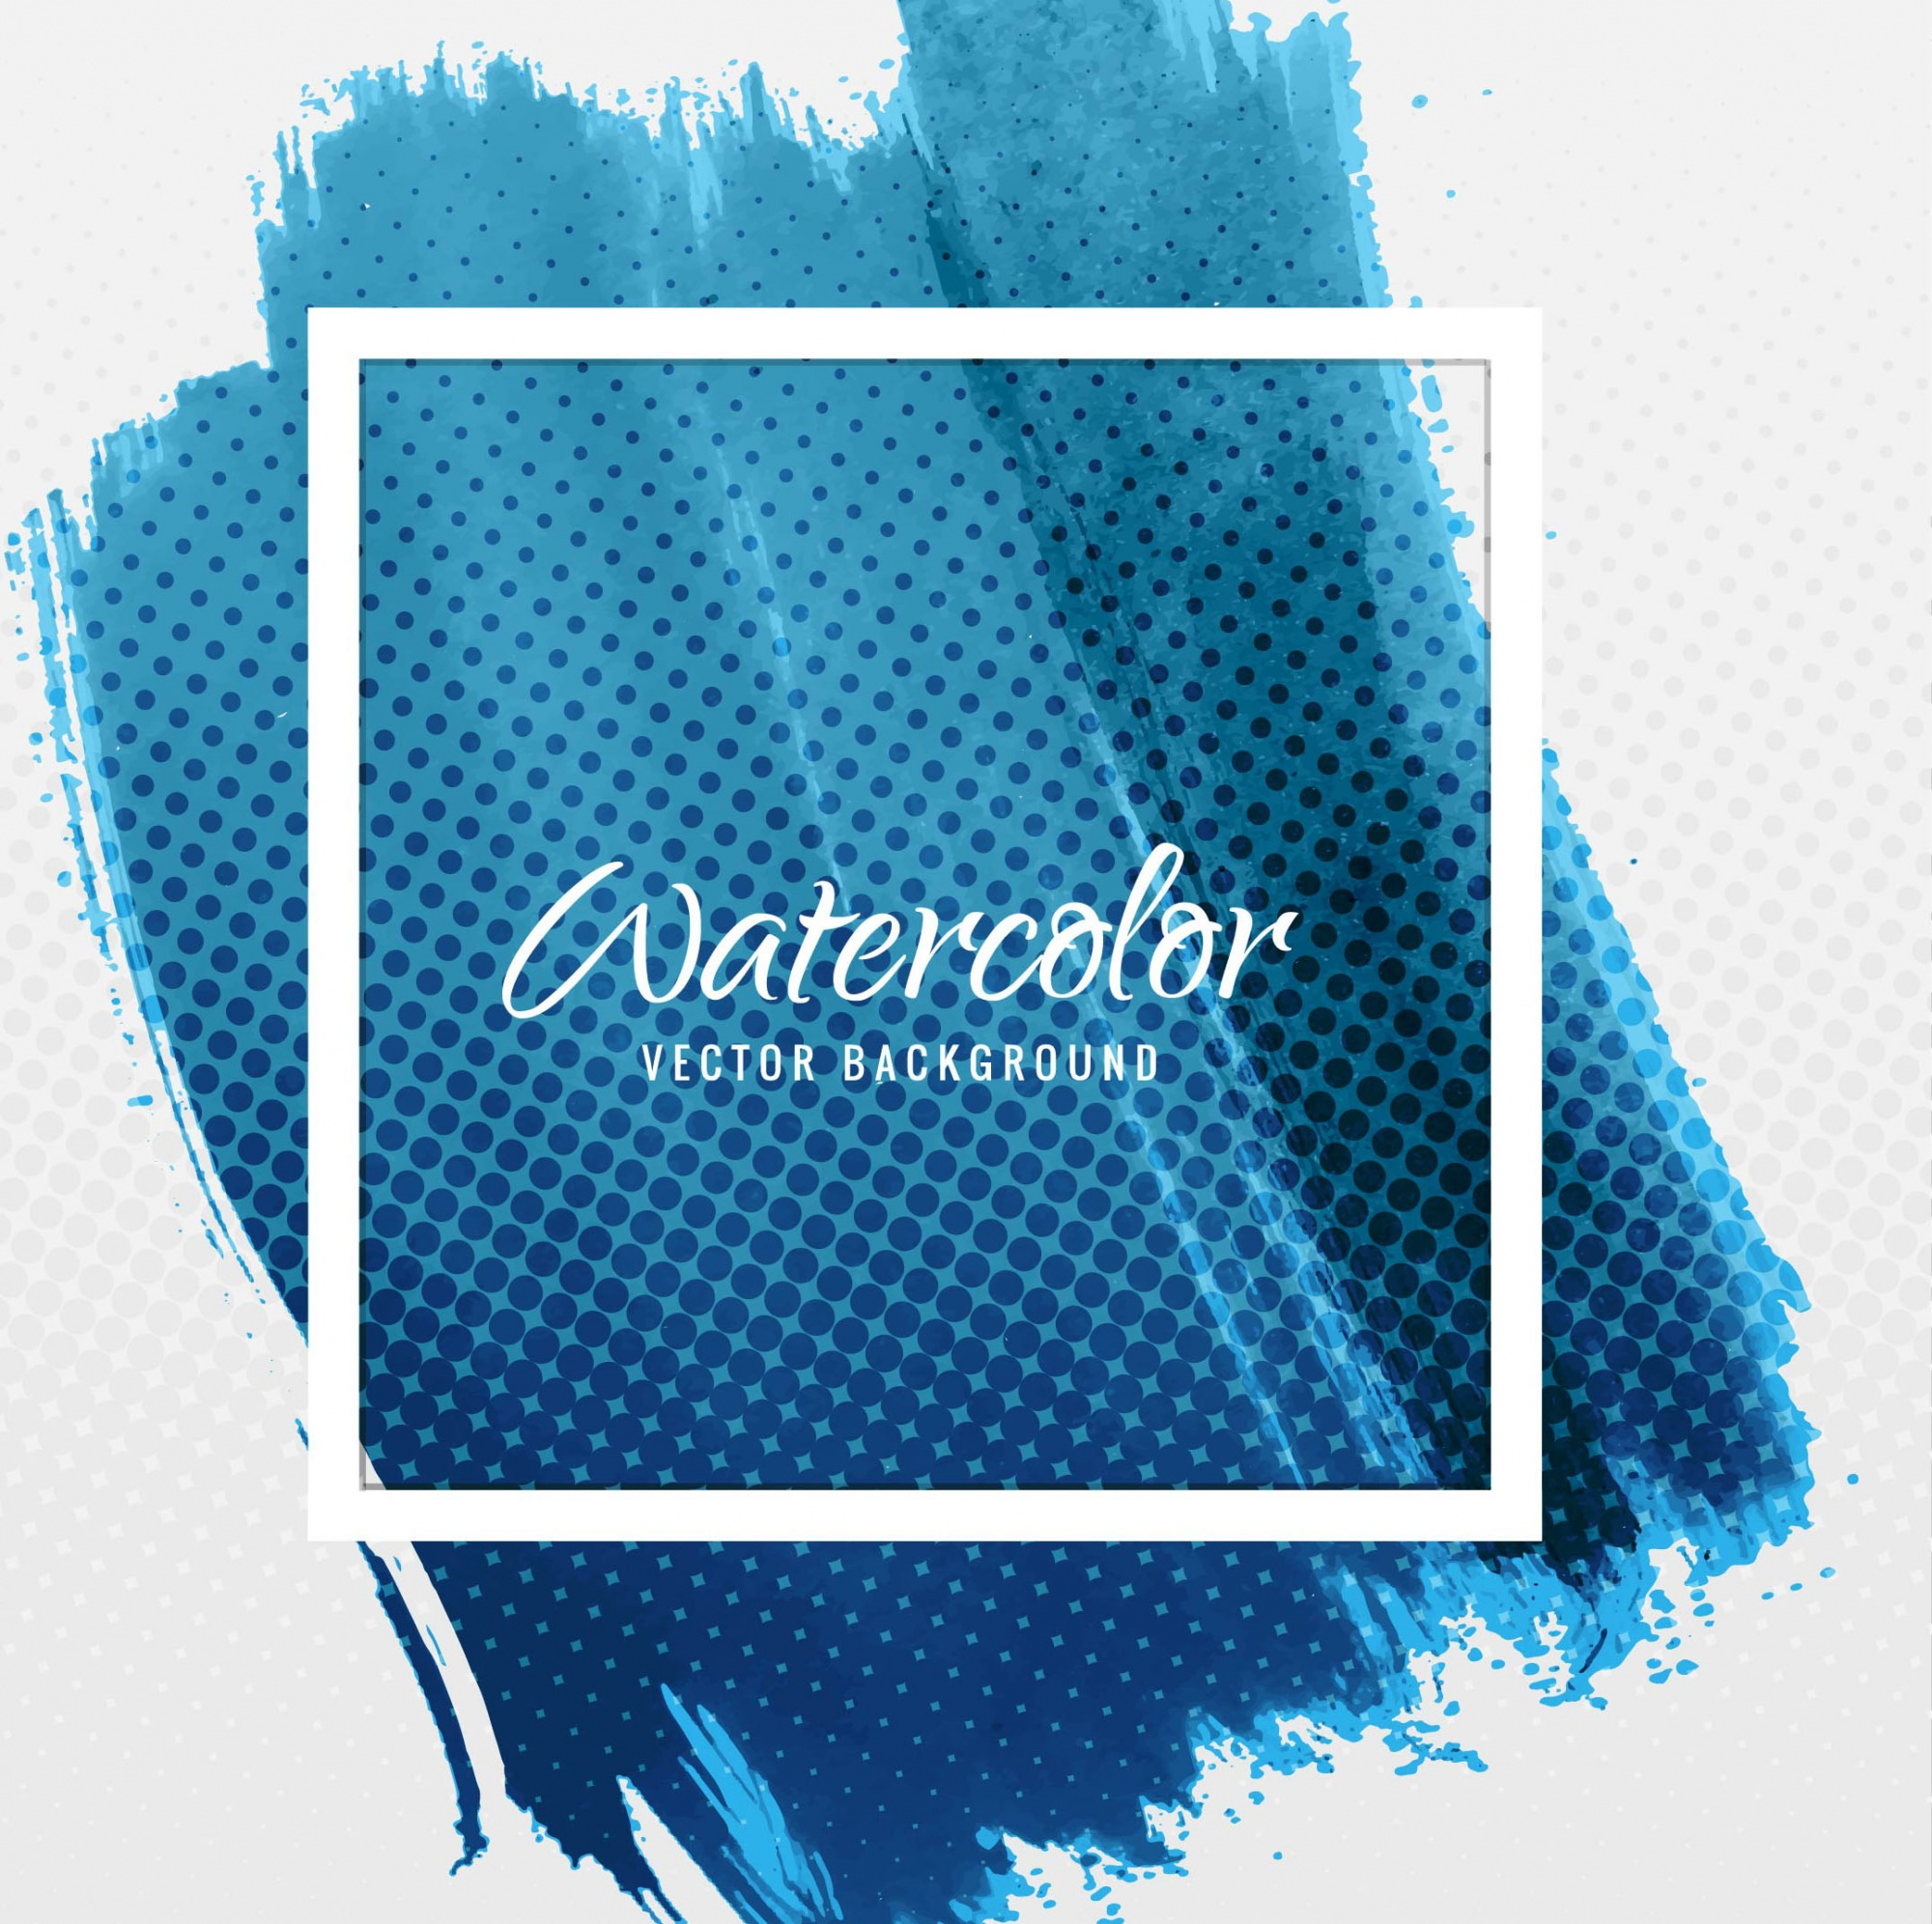 Blue watercolor background with a frame